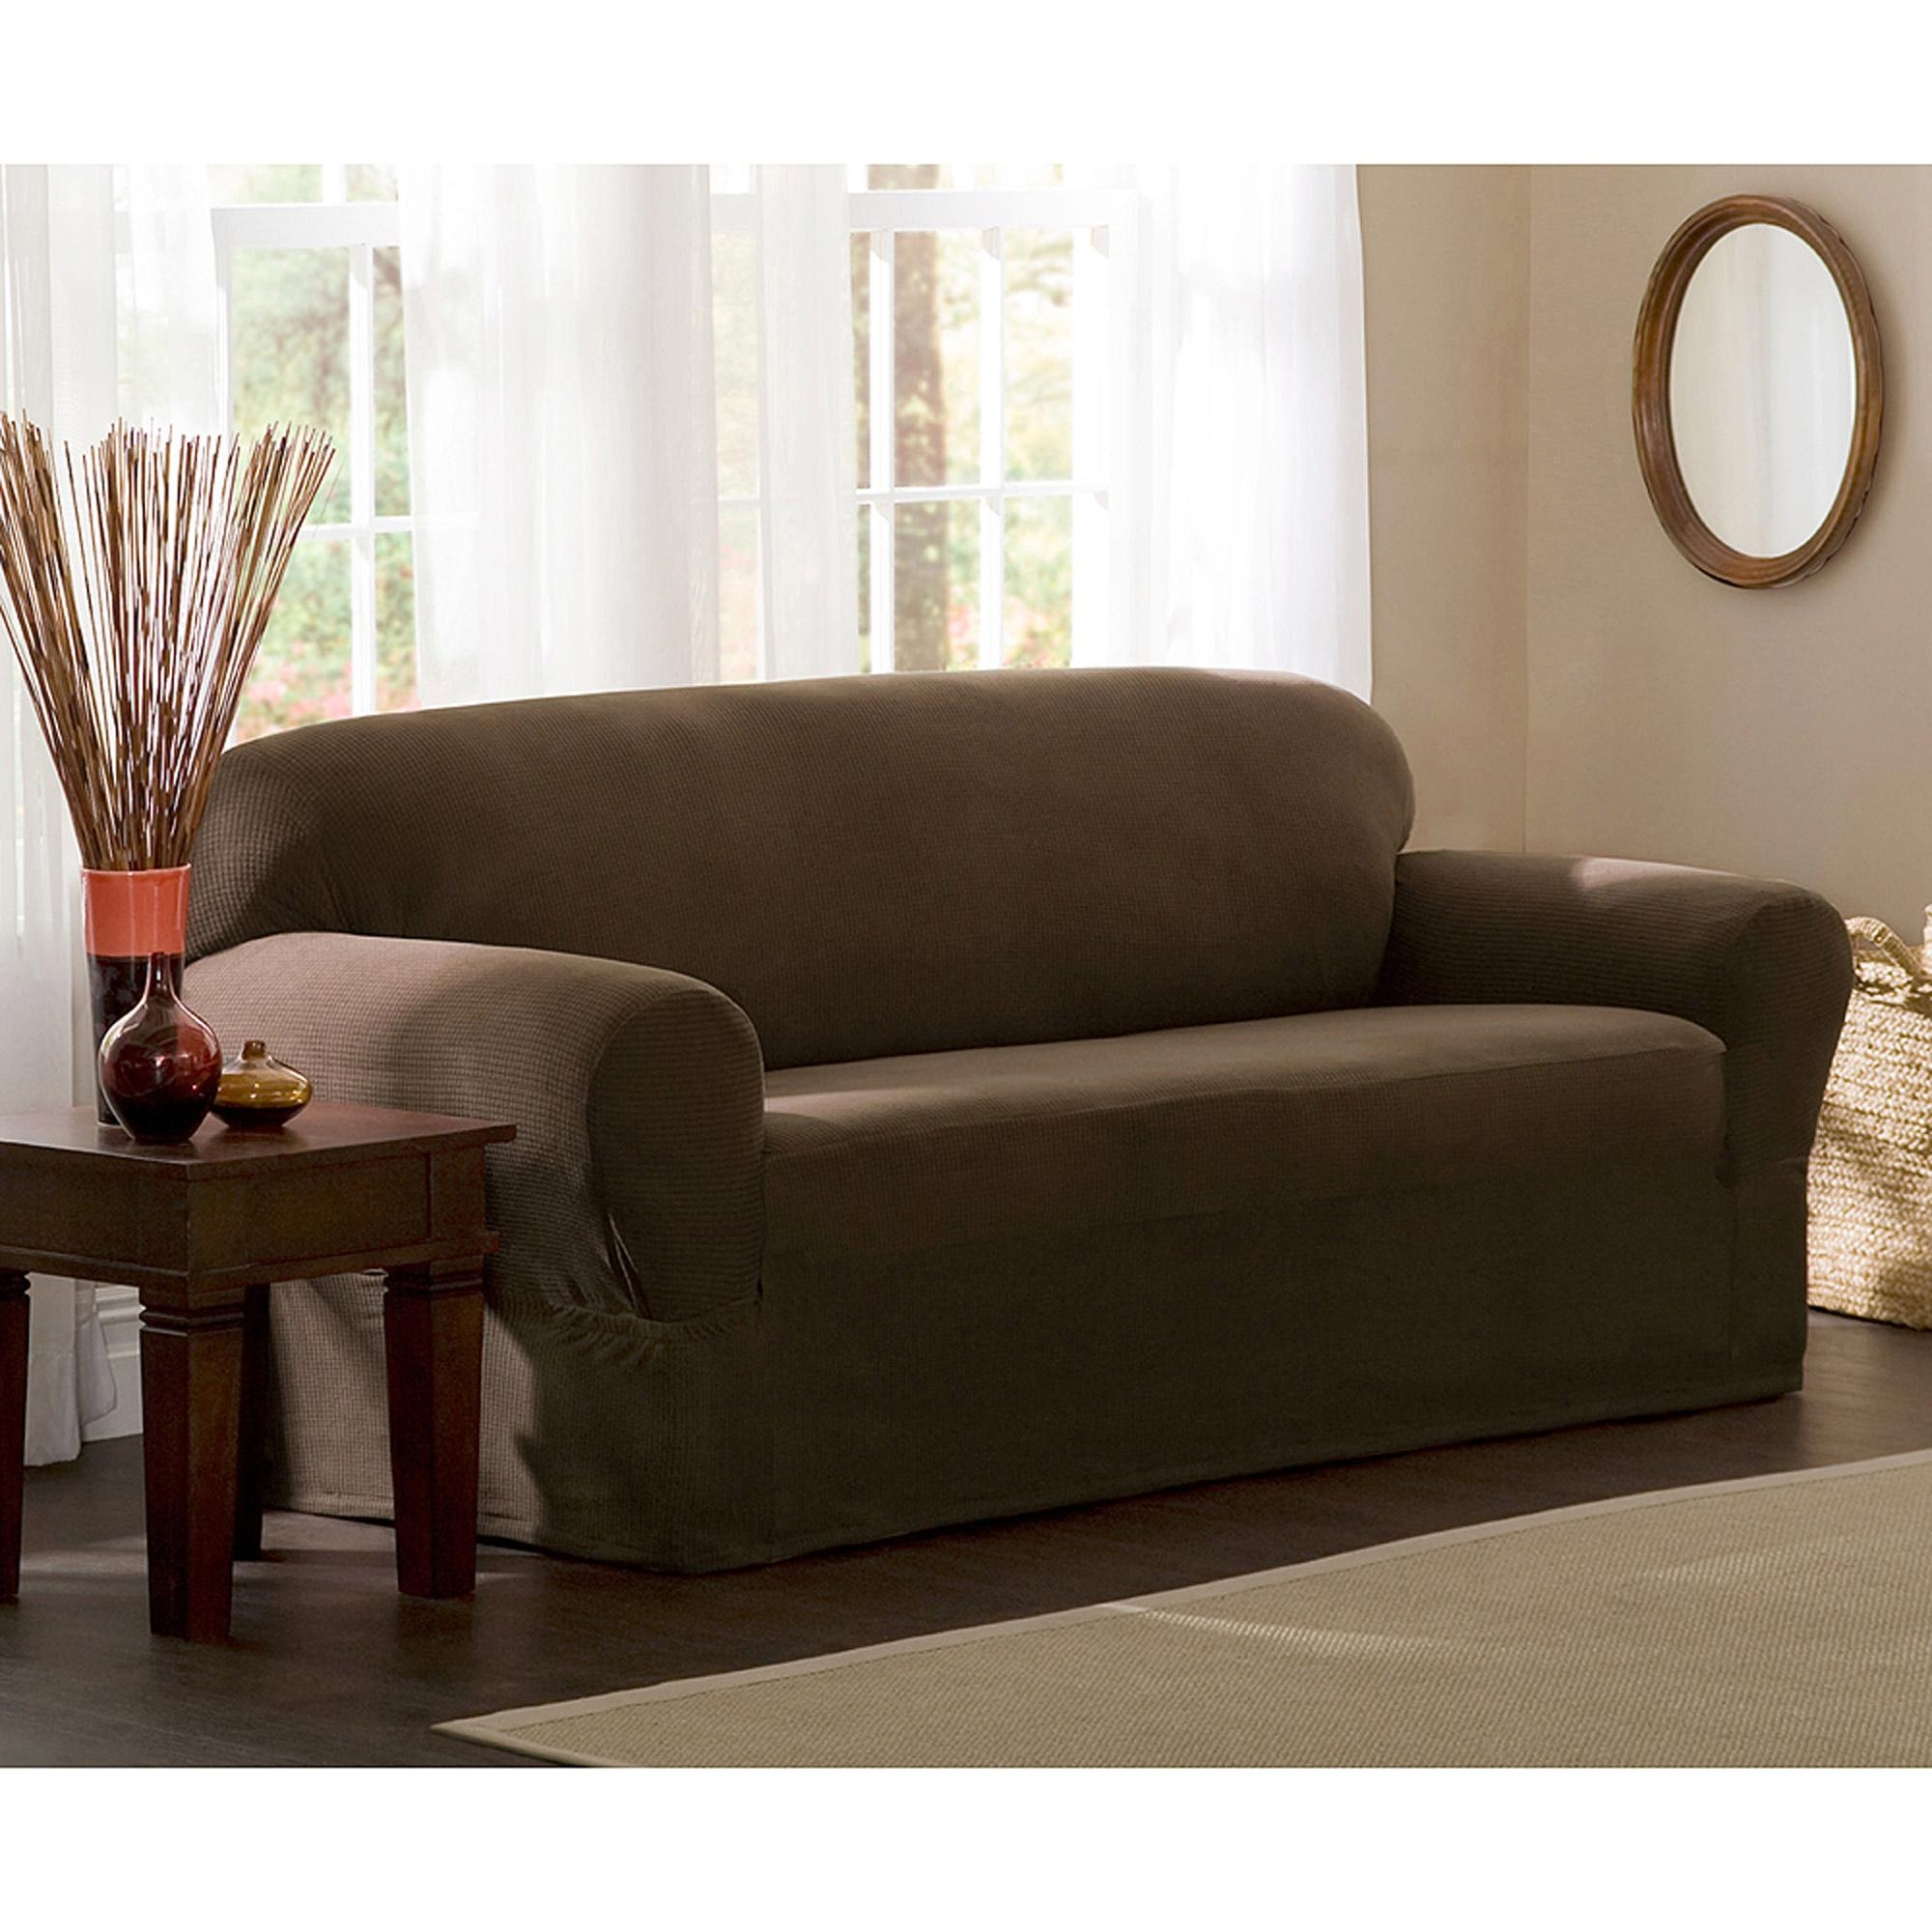 Mainstays 1 Piece Stretch Fabric Sofa Slipcover – Walmart For Wallmart Sofa (Image 12 of 20)